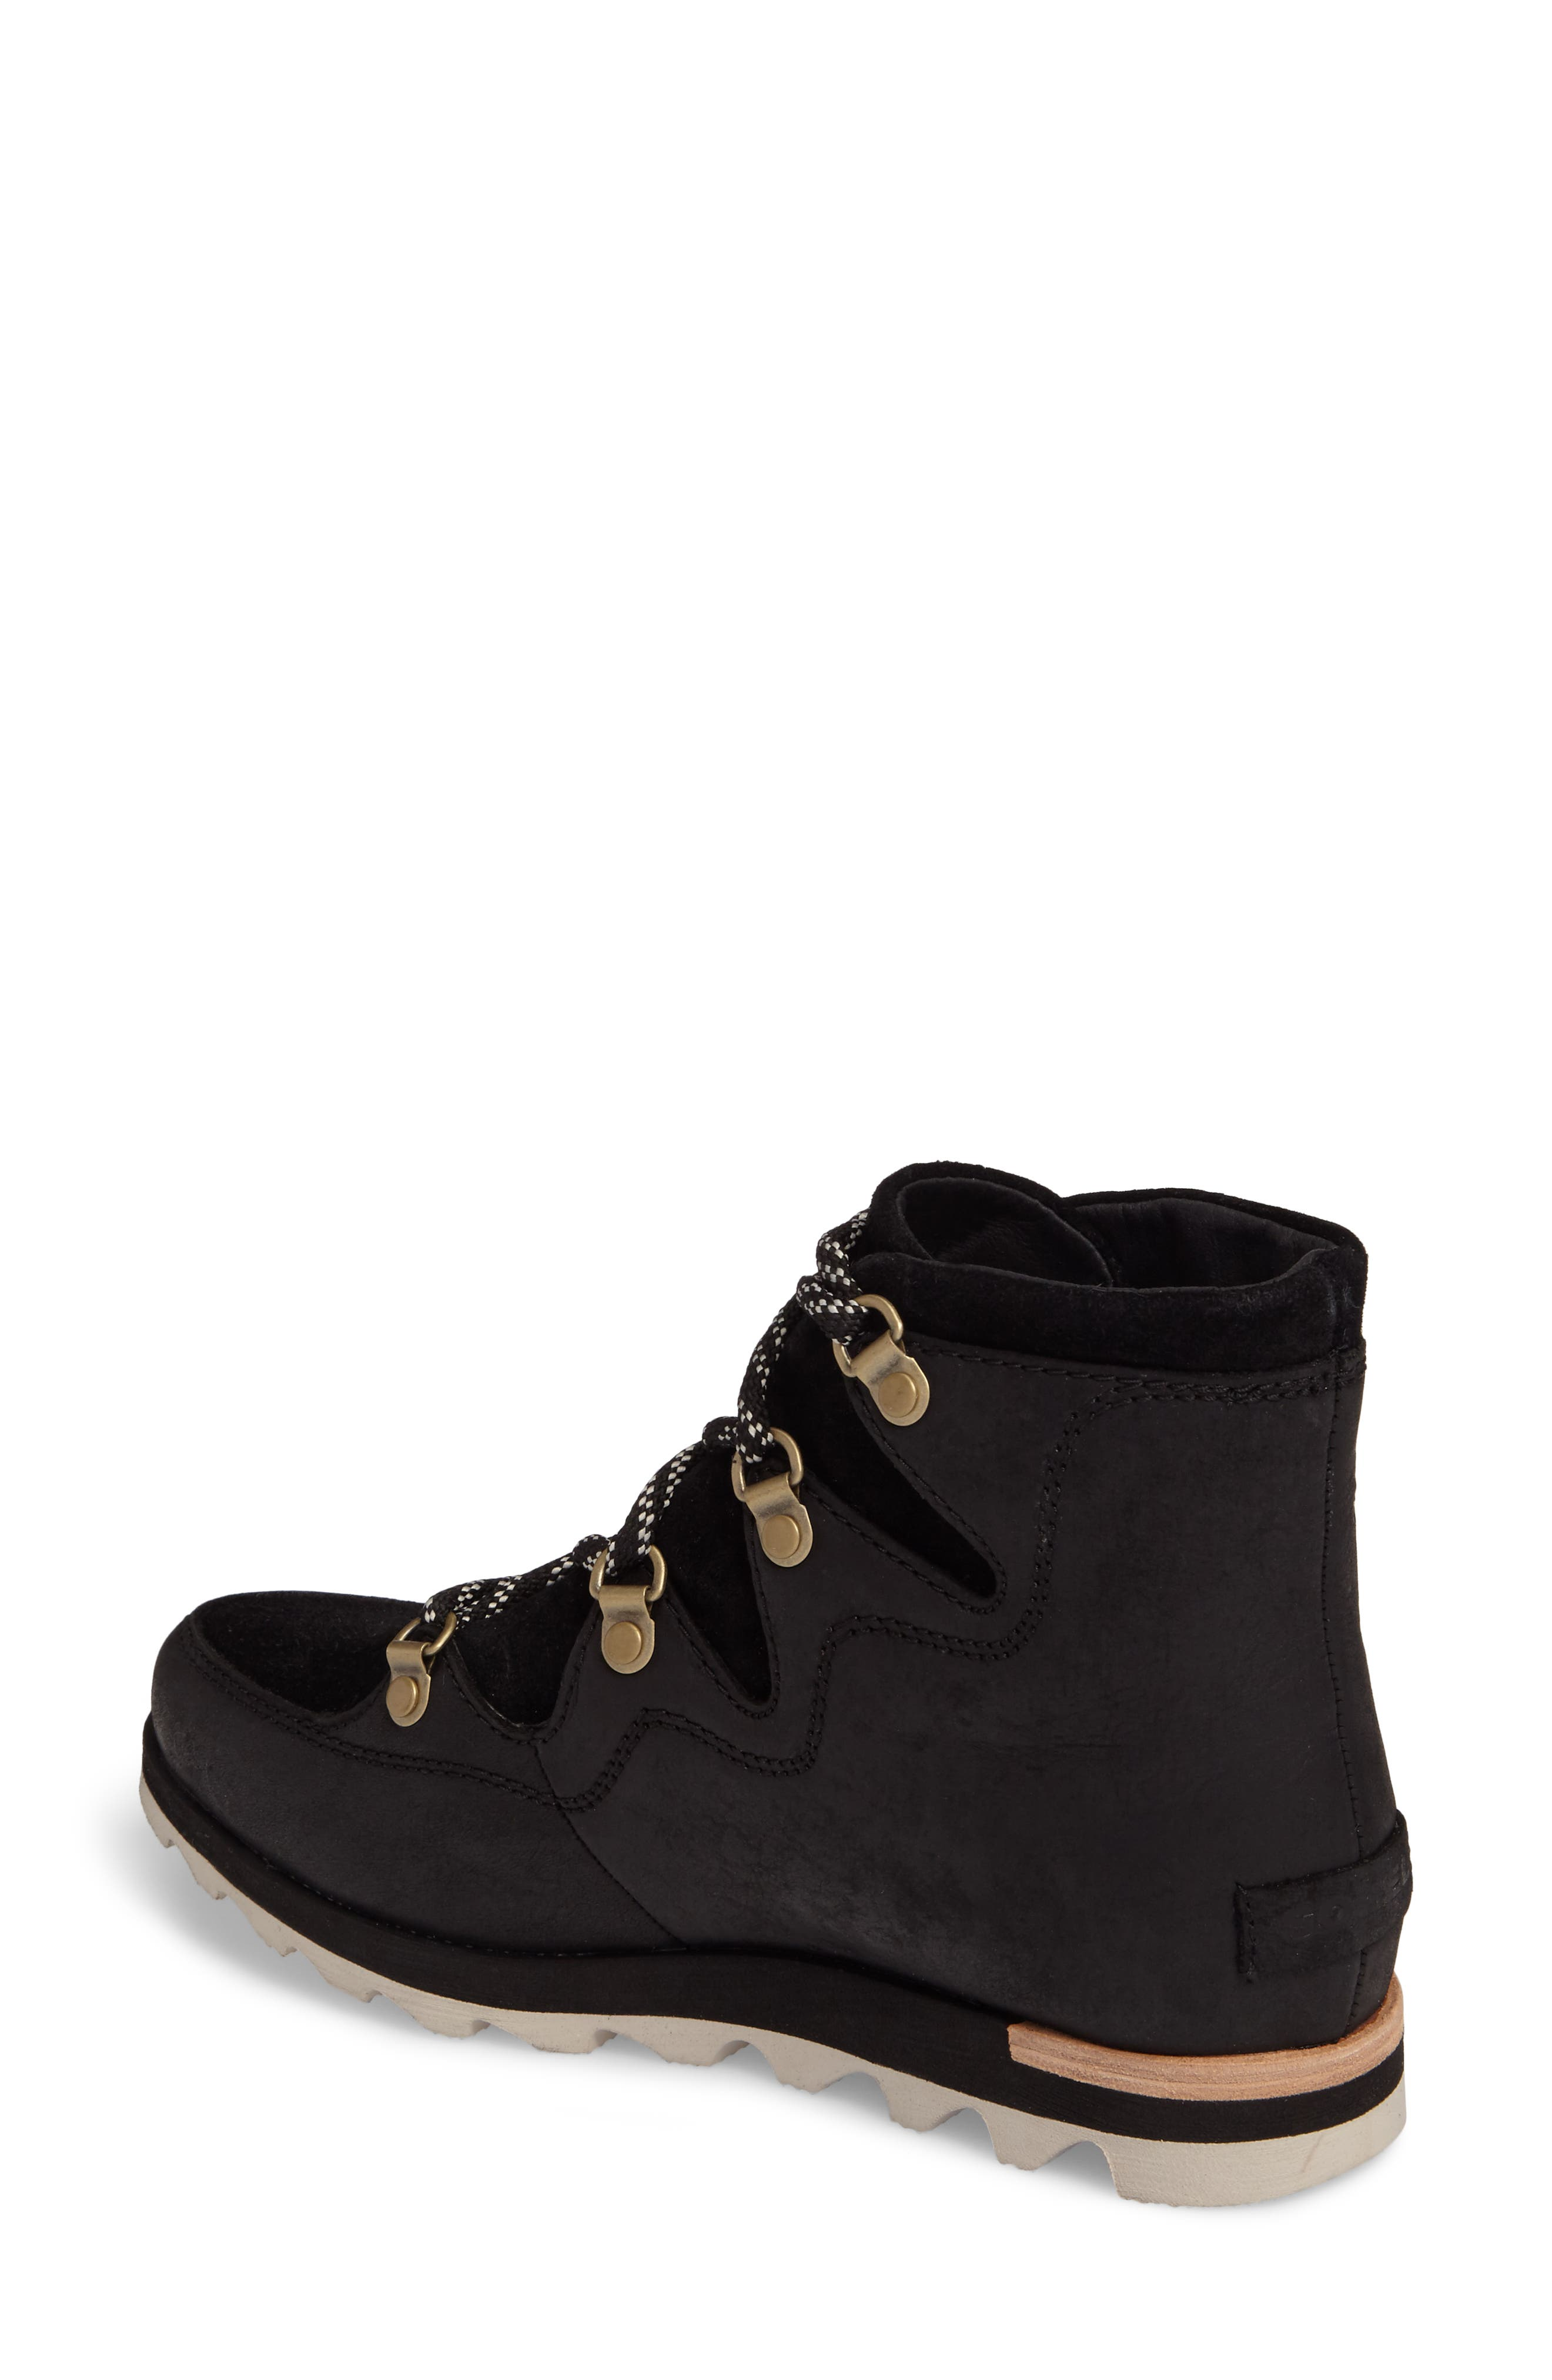 Sneakchic Alpine Waterproof Bootie,                             Alternate thumbnail 2, color,                             010